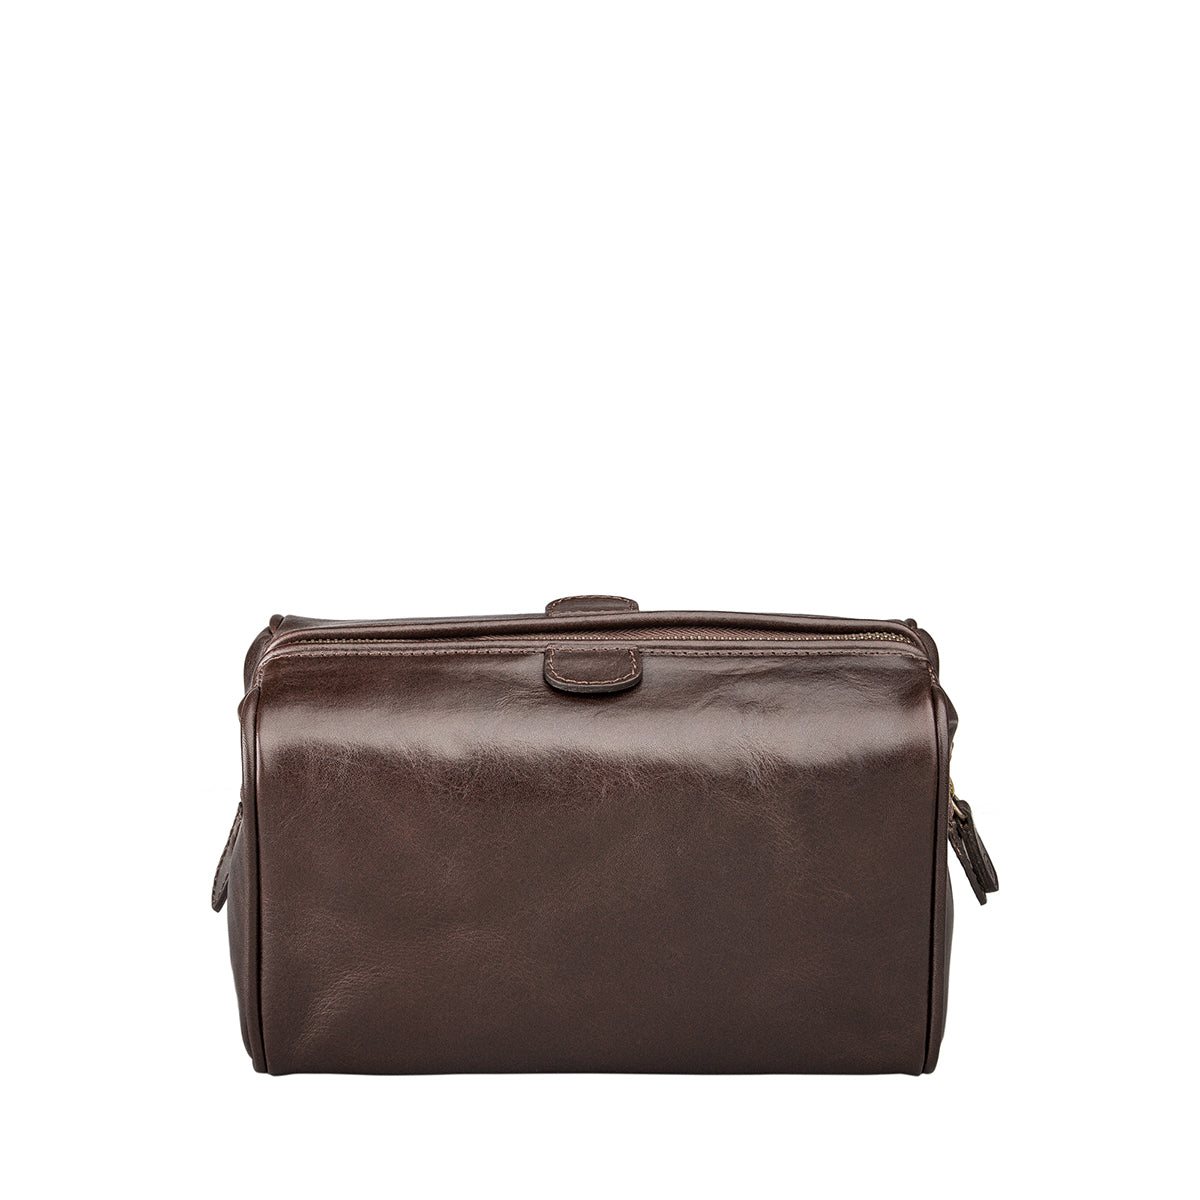 Image 4 of the 'Duno' Chocolate Veg-Tanned Leather Wash Bag